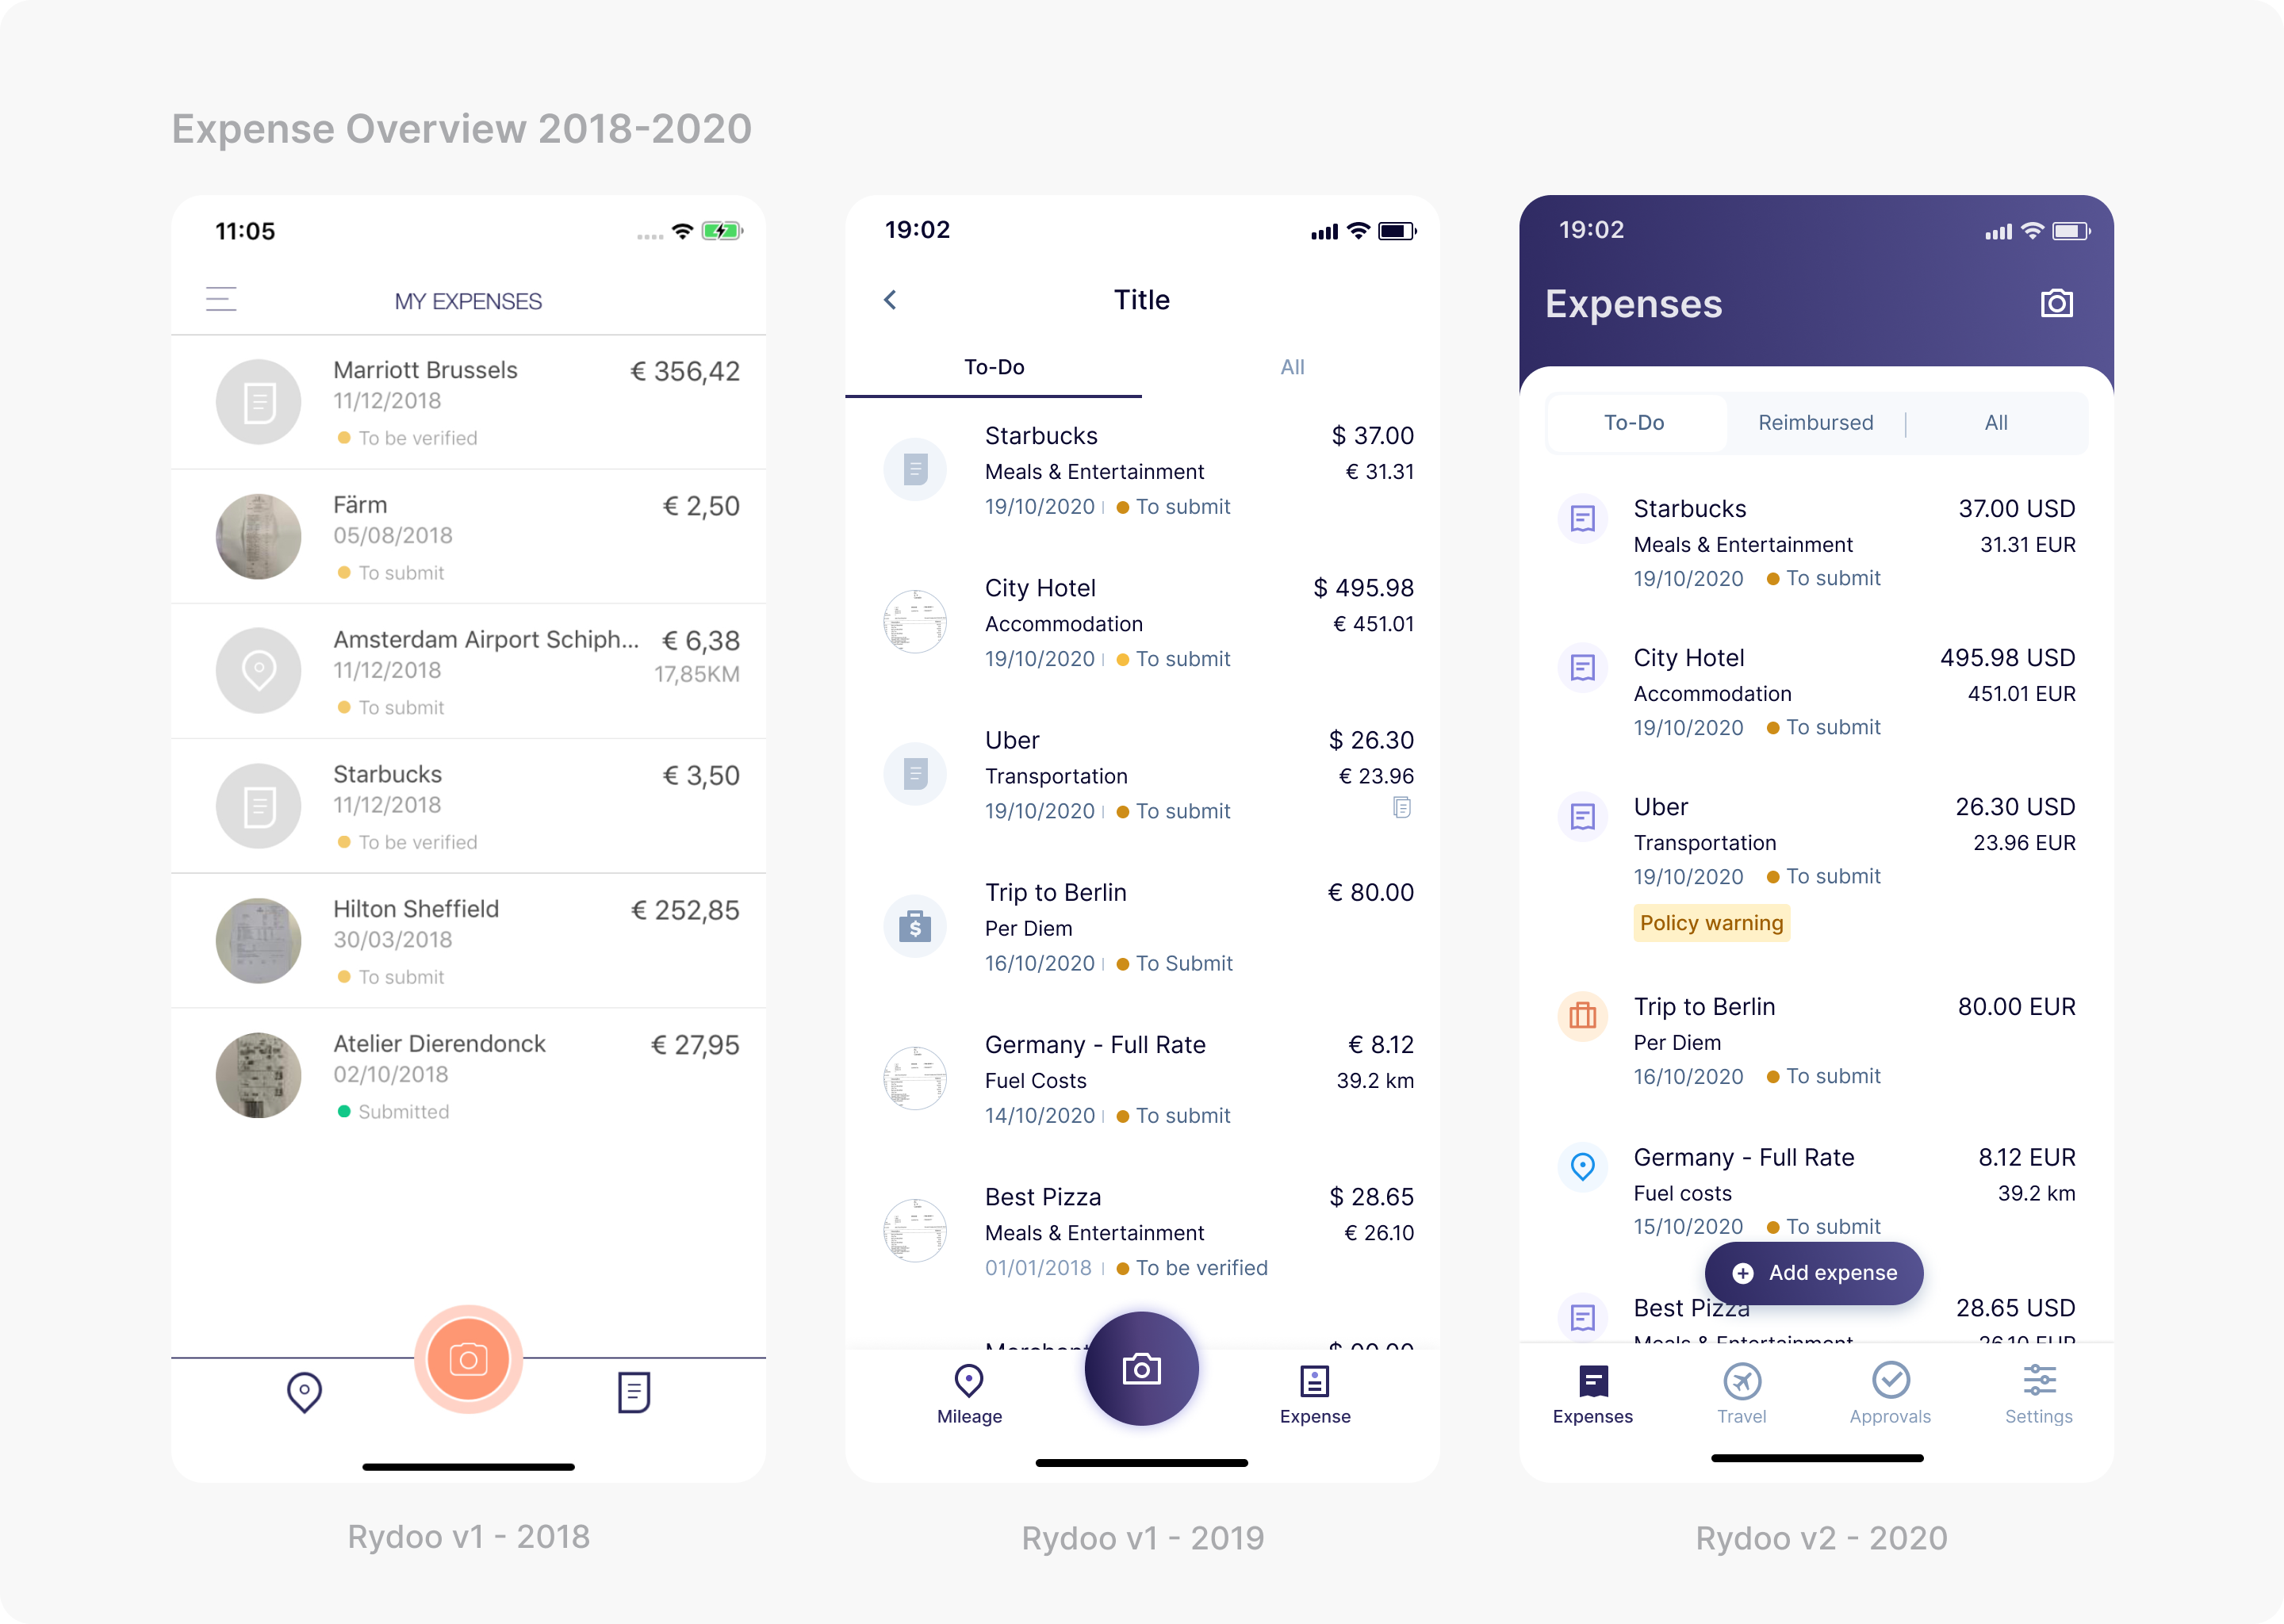 Three mobile screenshots showcasing the expense overview from 2018 to 2020